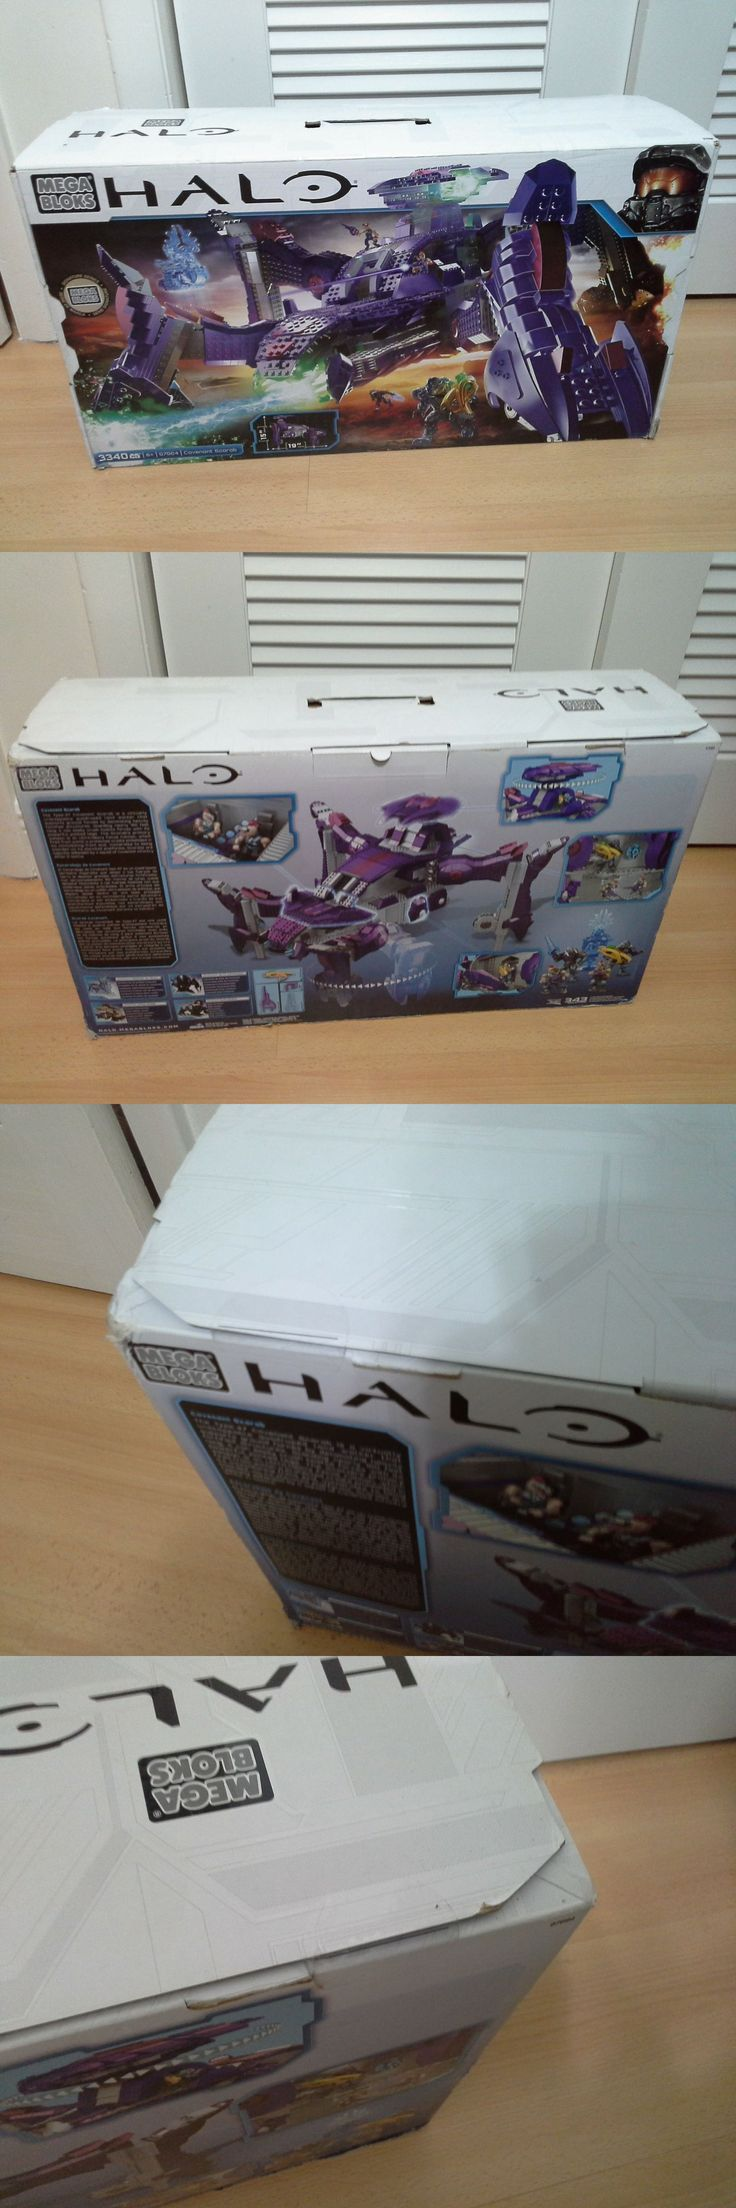 Other Building Toys 19015: ** Halo Mega Bloks Covenant Scarab Set 97694 New Sealed Box Construx -> BUY IT NOW ONLY: $380 on eBay!